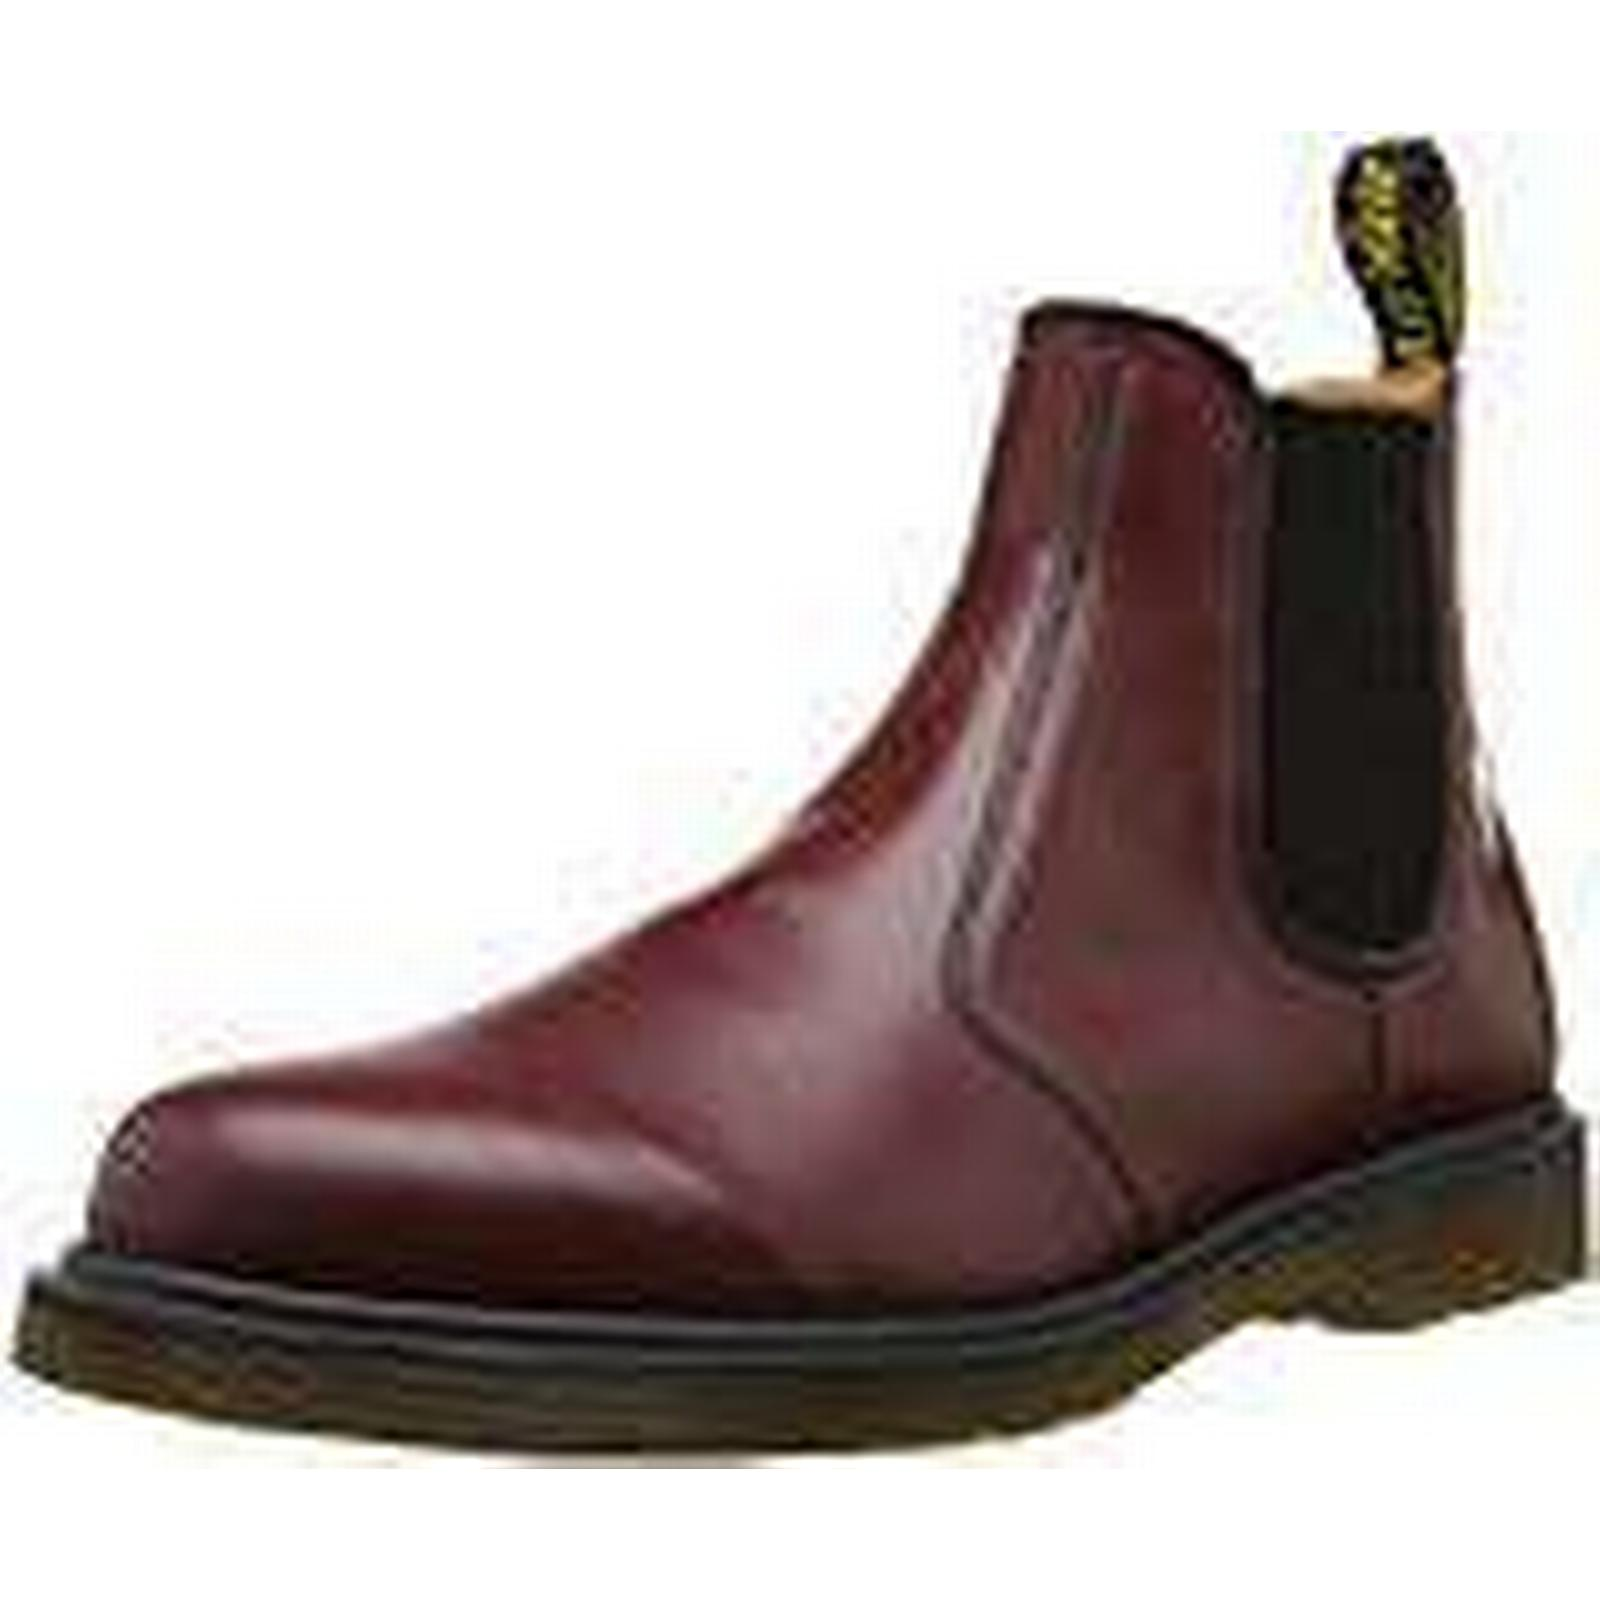 Dr. Boots, Martens Dr. Marten's 2976 Original, Men's Boots, Dr. Cherry Red, 4 UK d08957